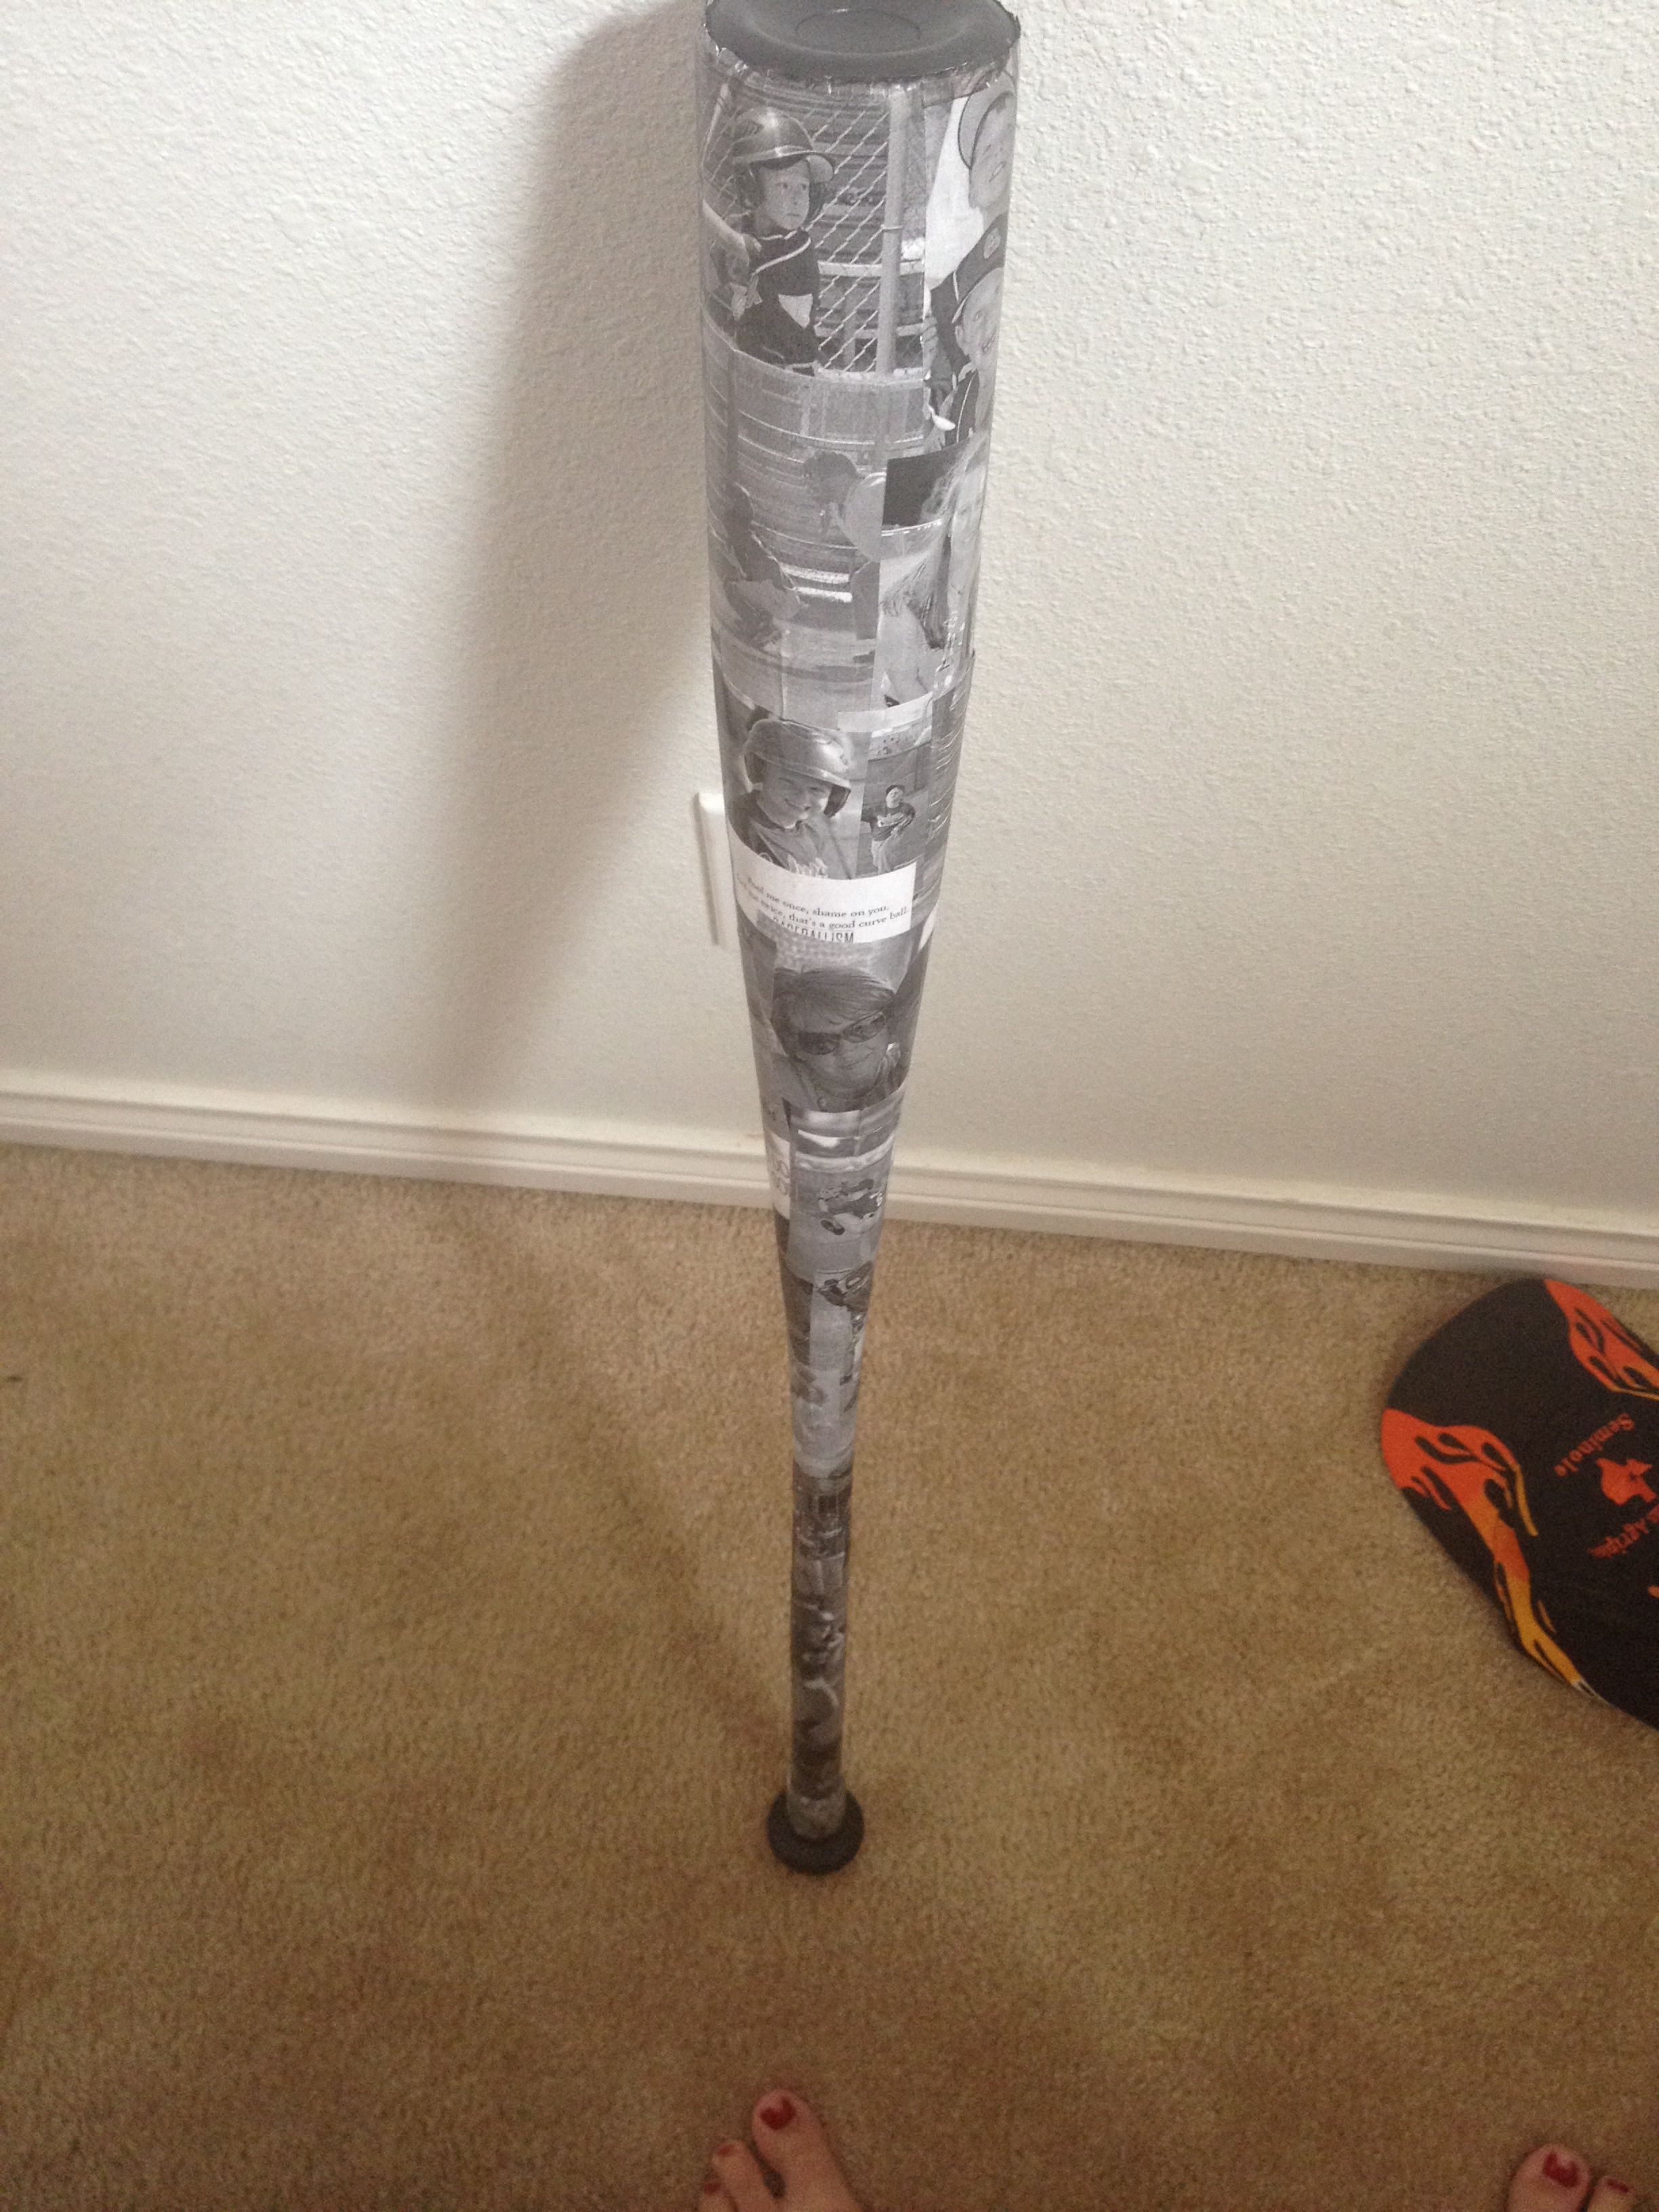 Modge podge an old baseball bat with baseball pictures for Baseball bats for crafts